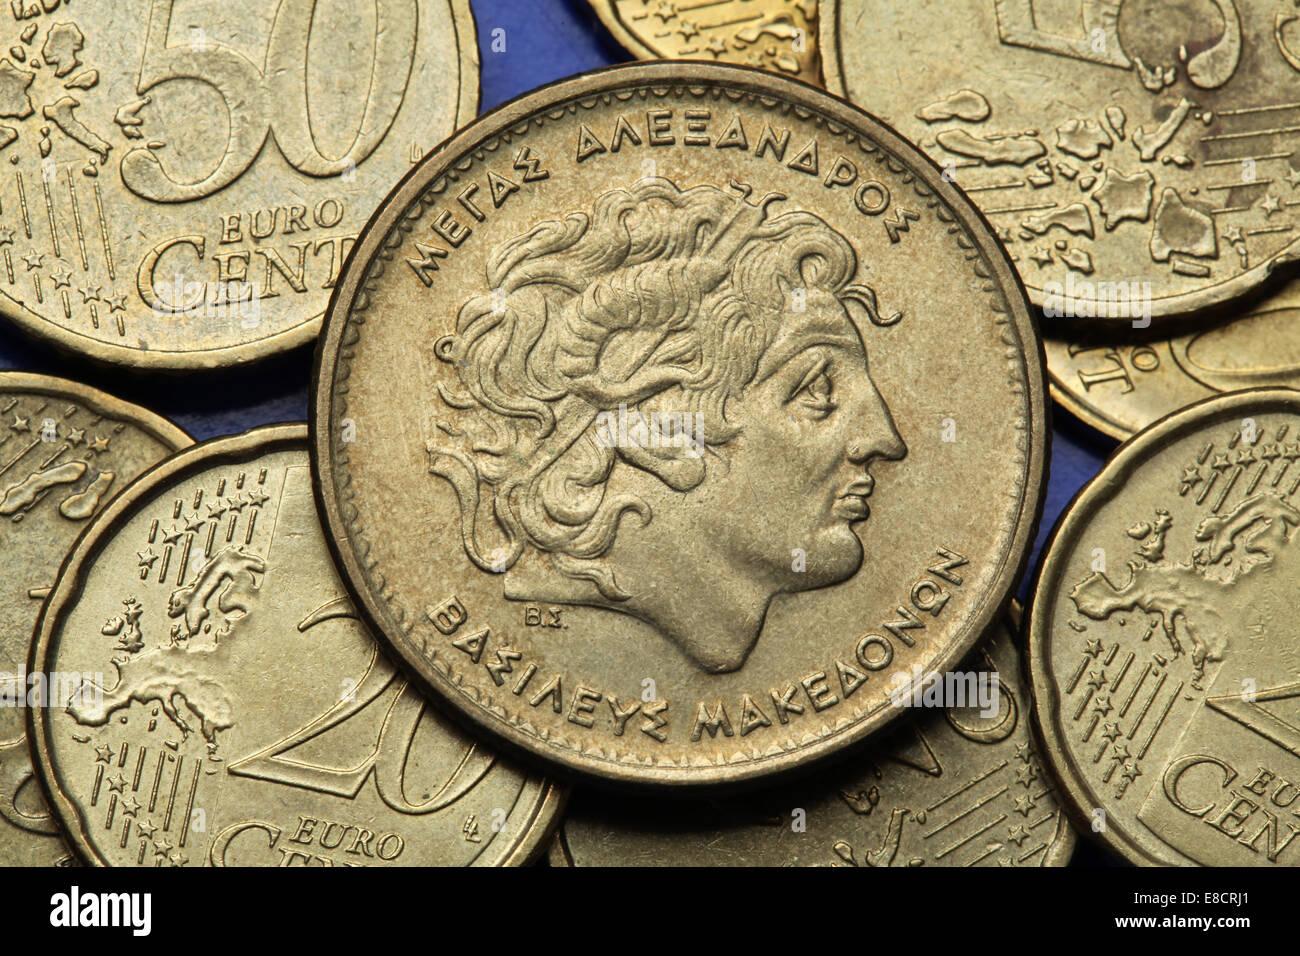 Coins of Greece. Alexander the Great depicted in the old Greek 100 drachma coin. - Stock Image